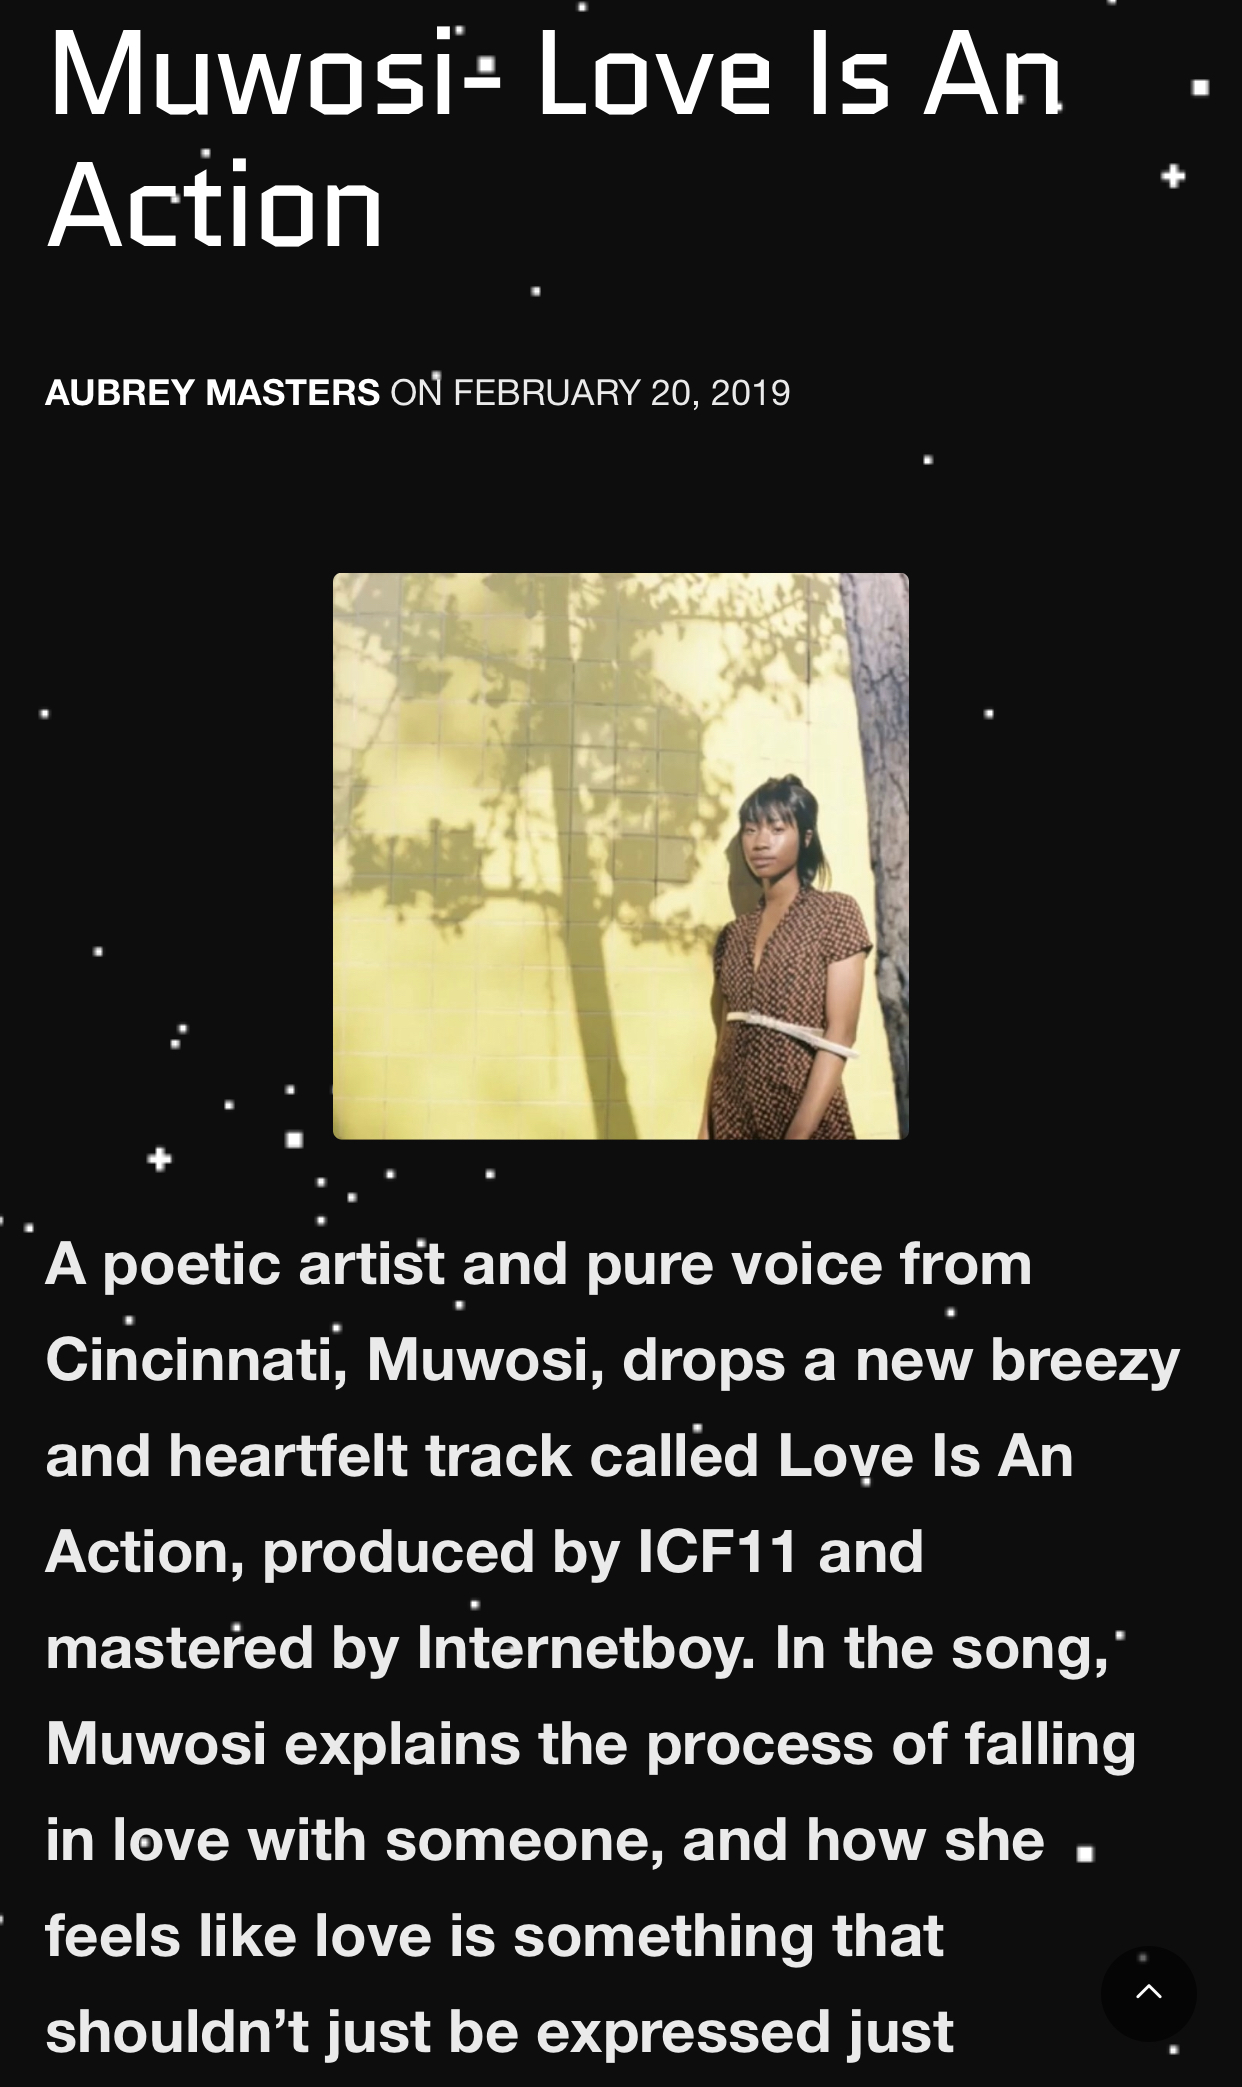 Soul Serum - Muwosi's Love Is An Action (Prod. ICF11) was featured on Soul Serum written by Aubrey Masters.